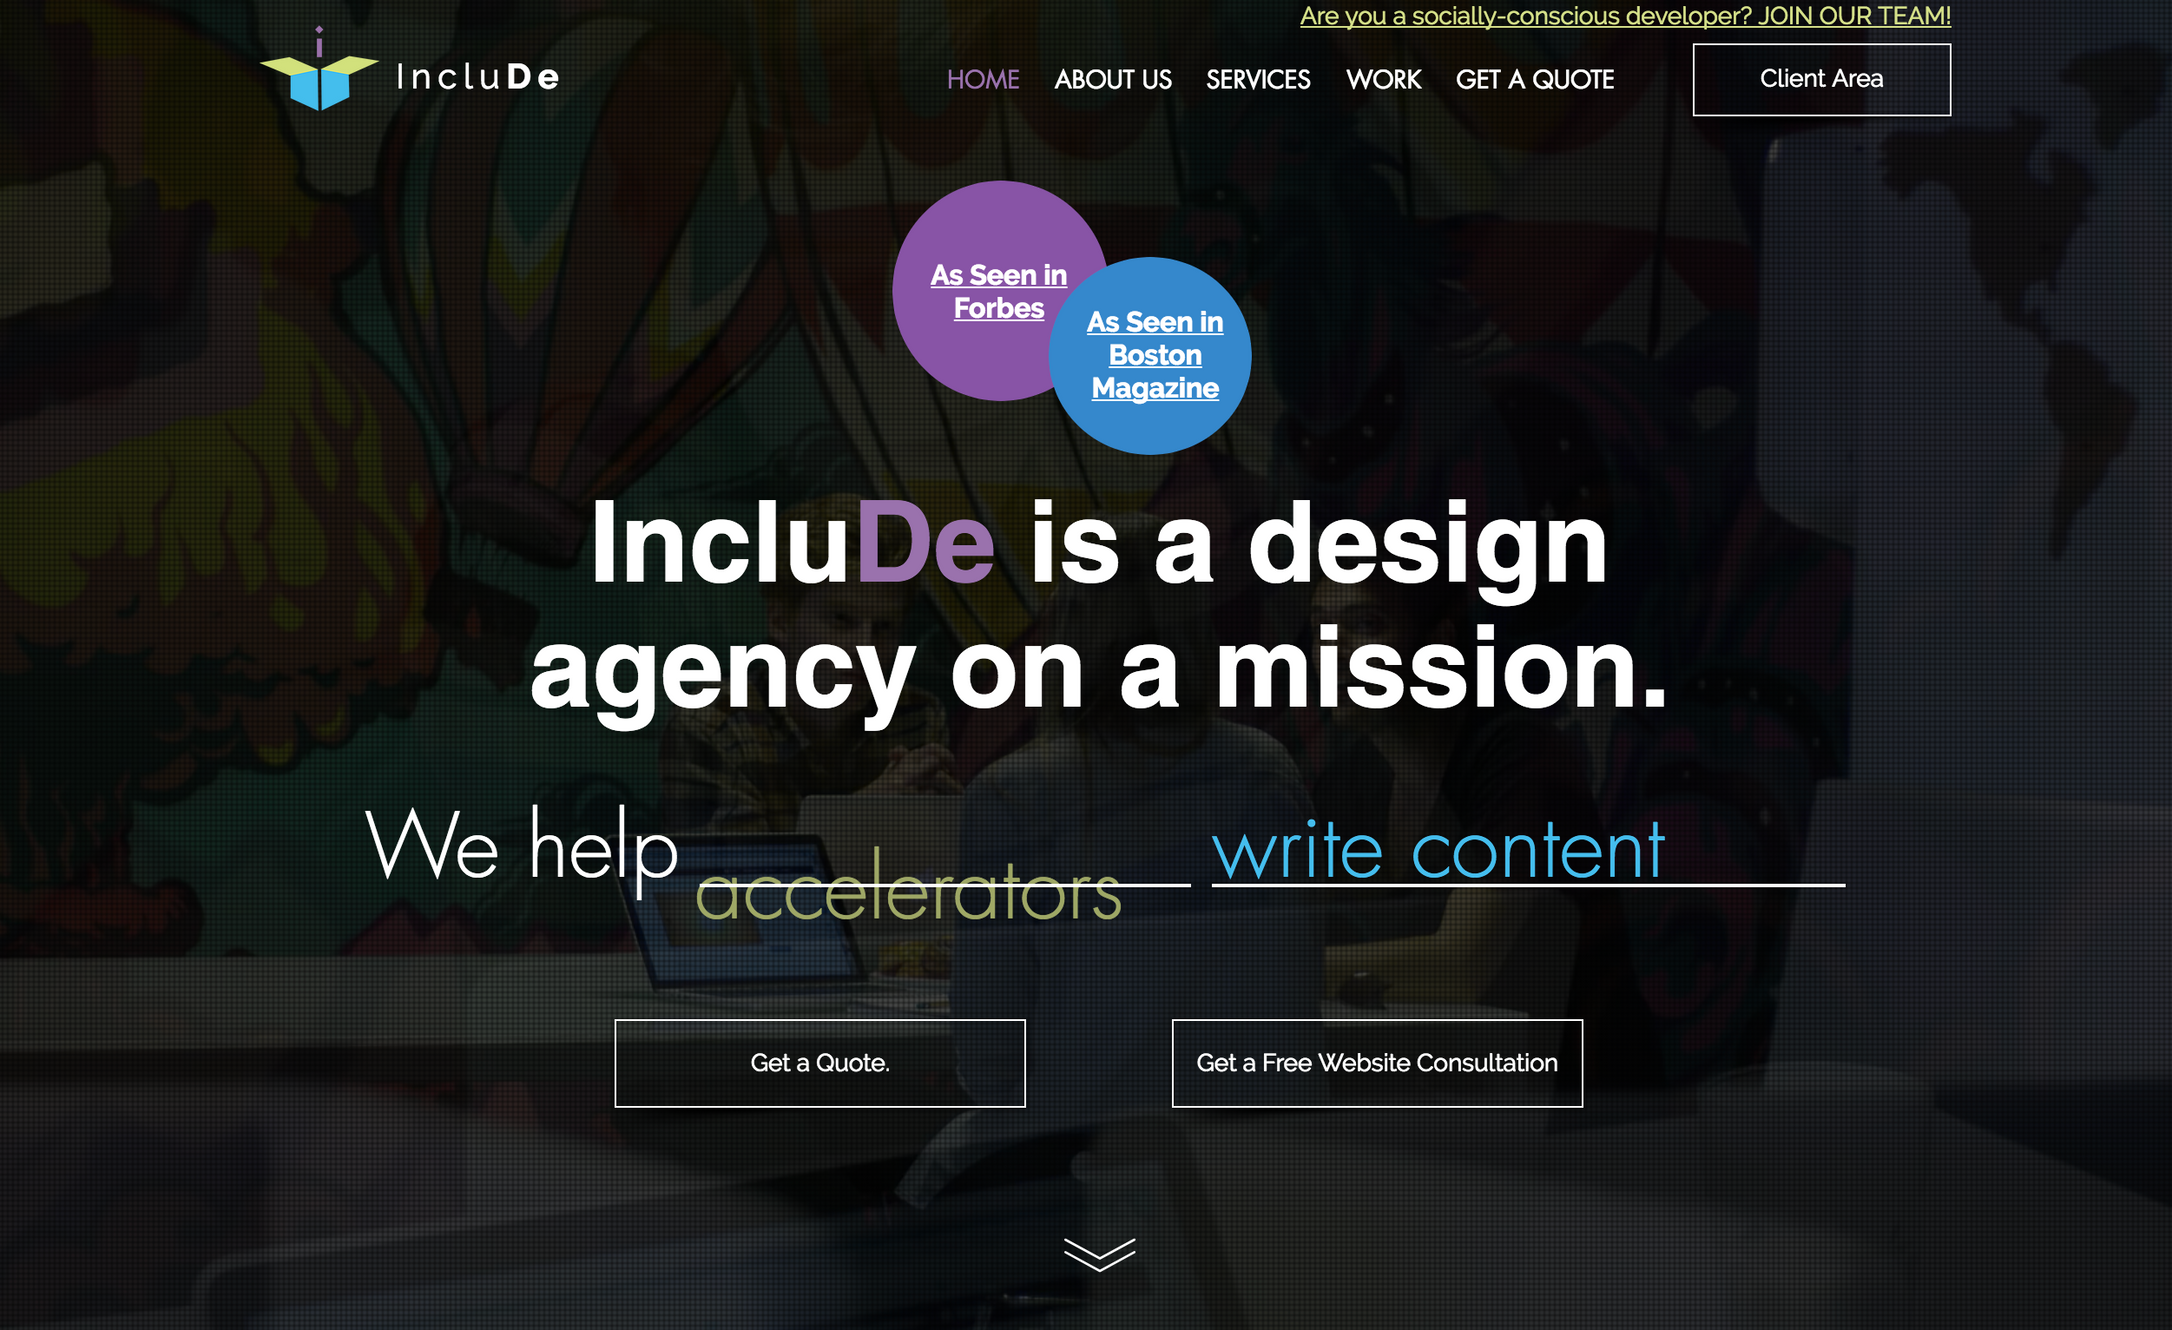 IncluDe Innovation: Boston Web Design & Digital Marketing Agency